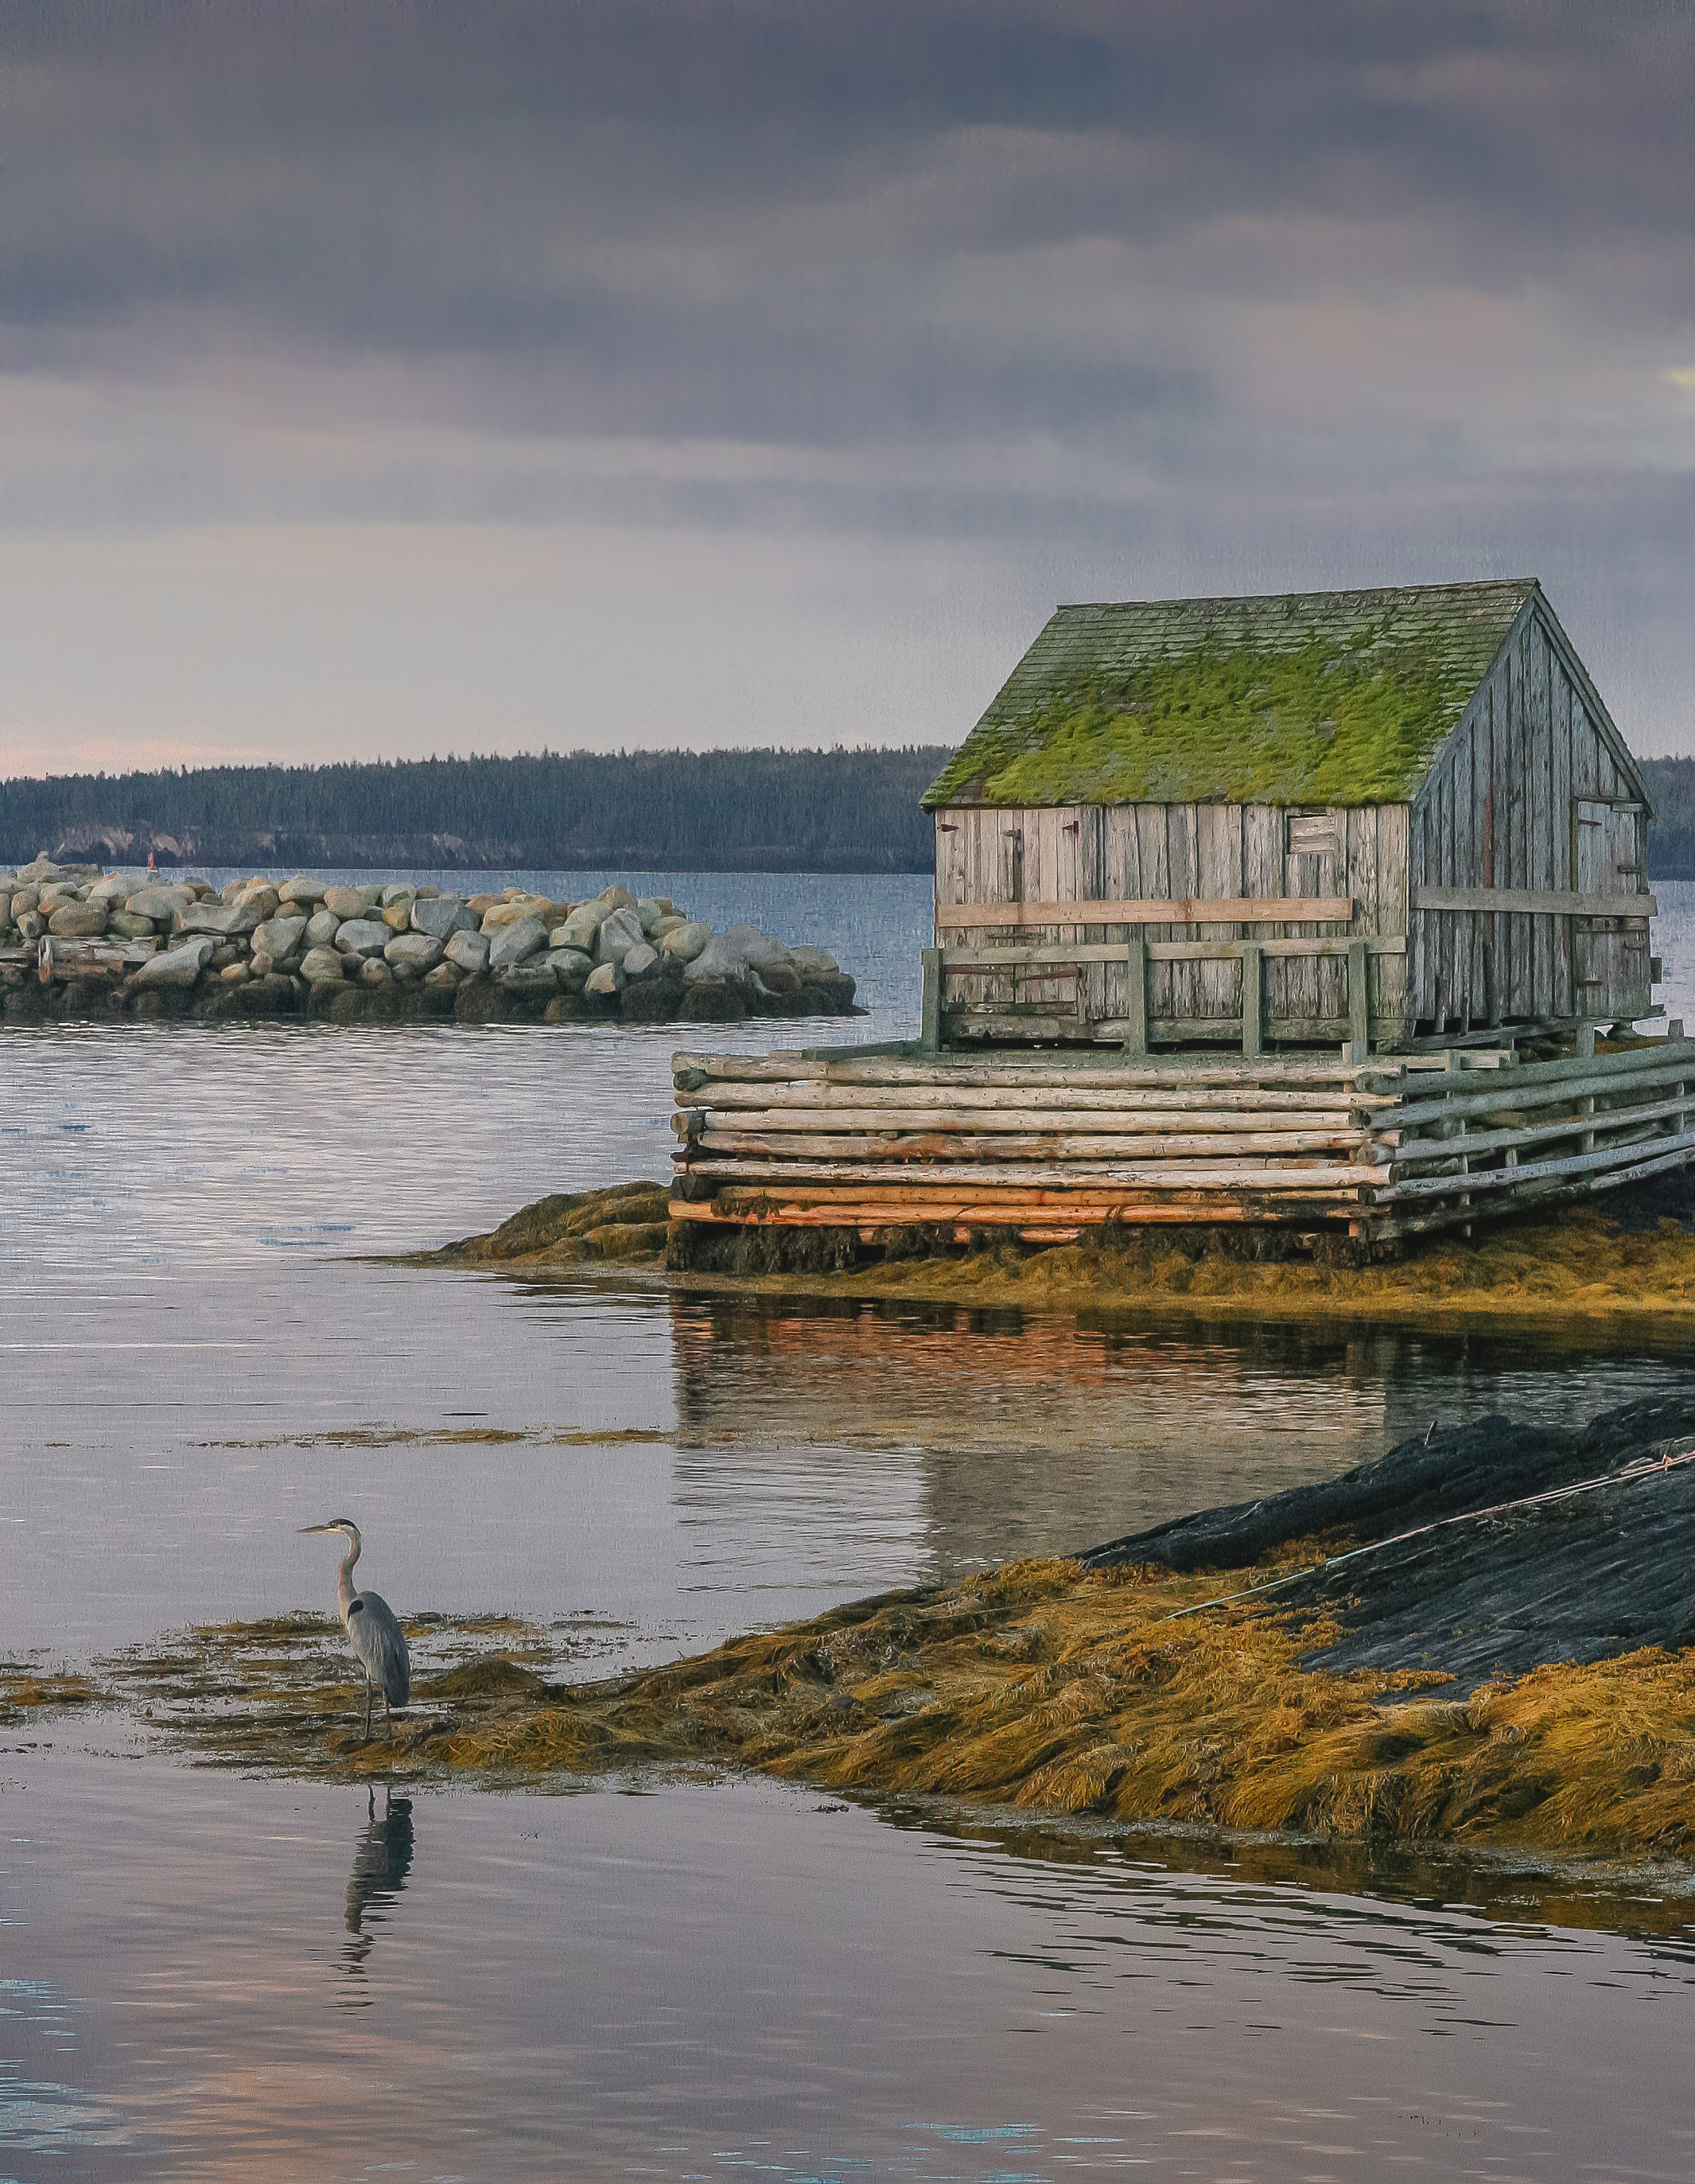 heron, great blue, great blue heron, waterbird, fishing shack, dawn